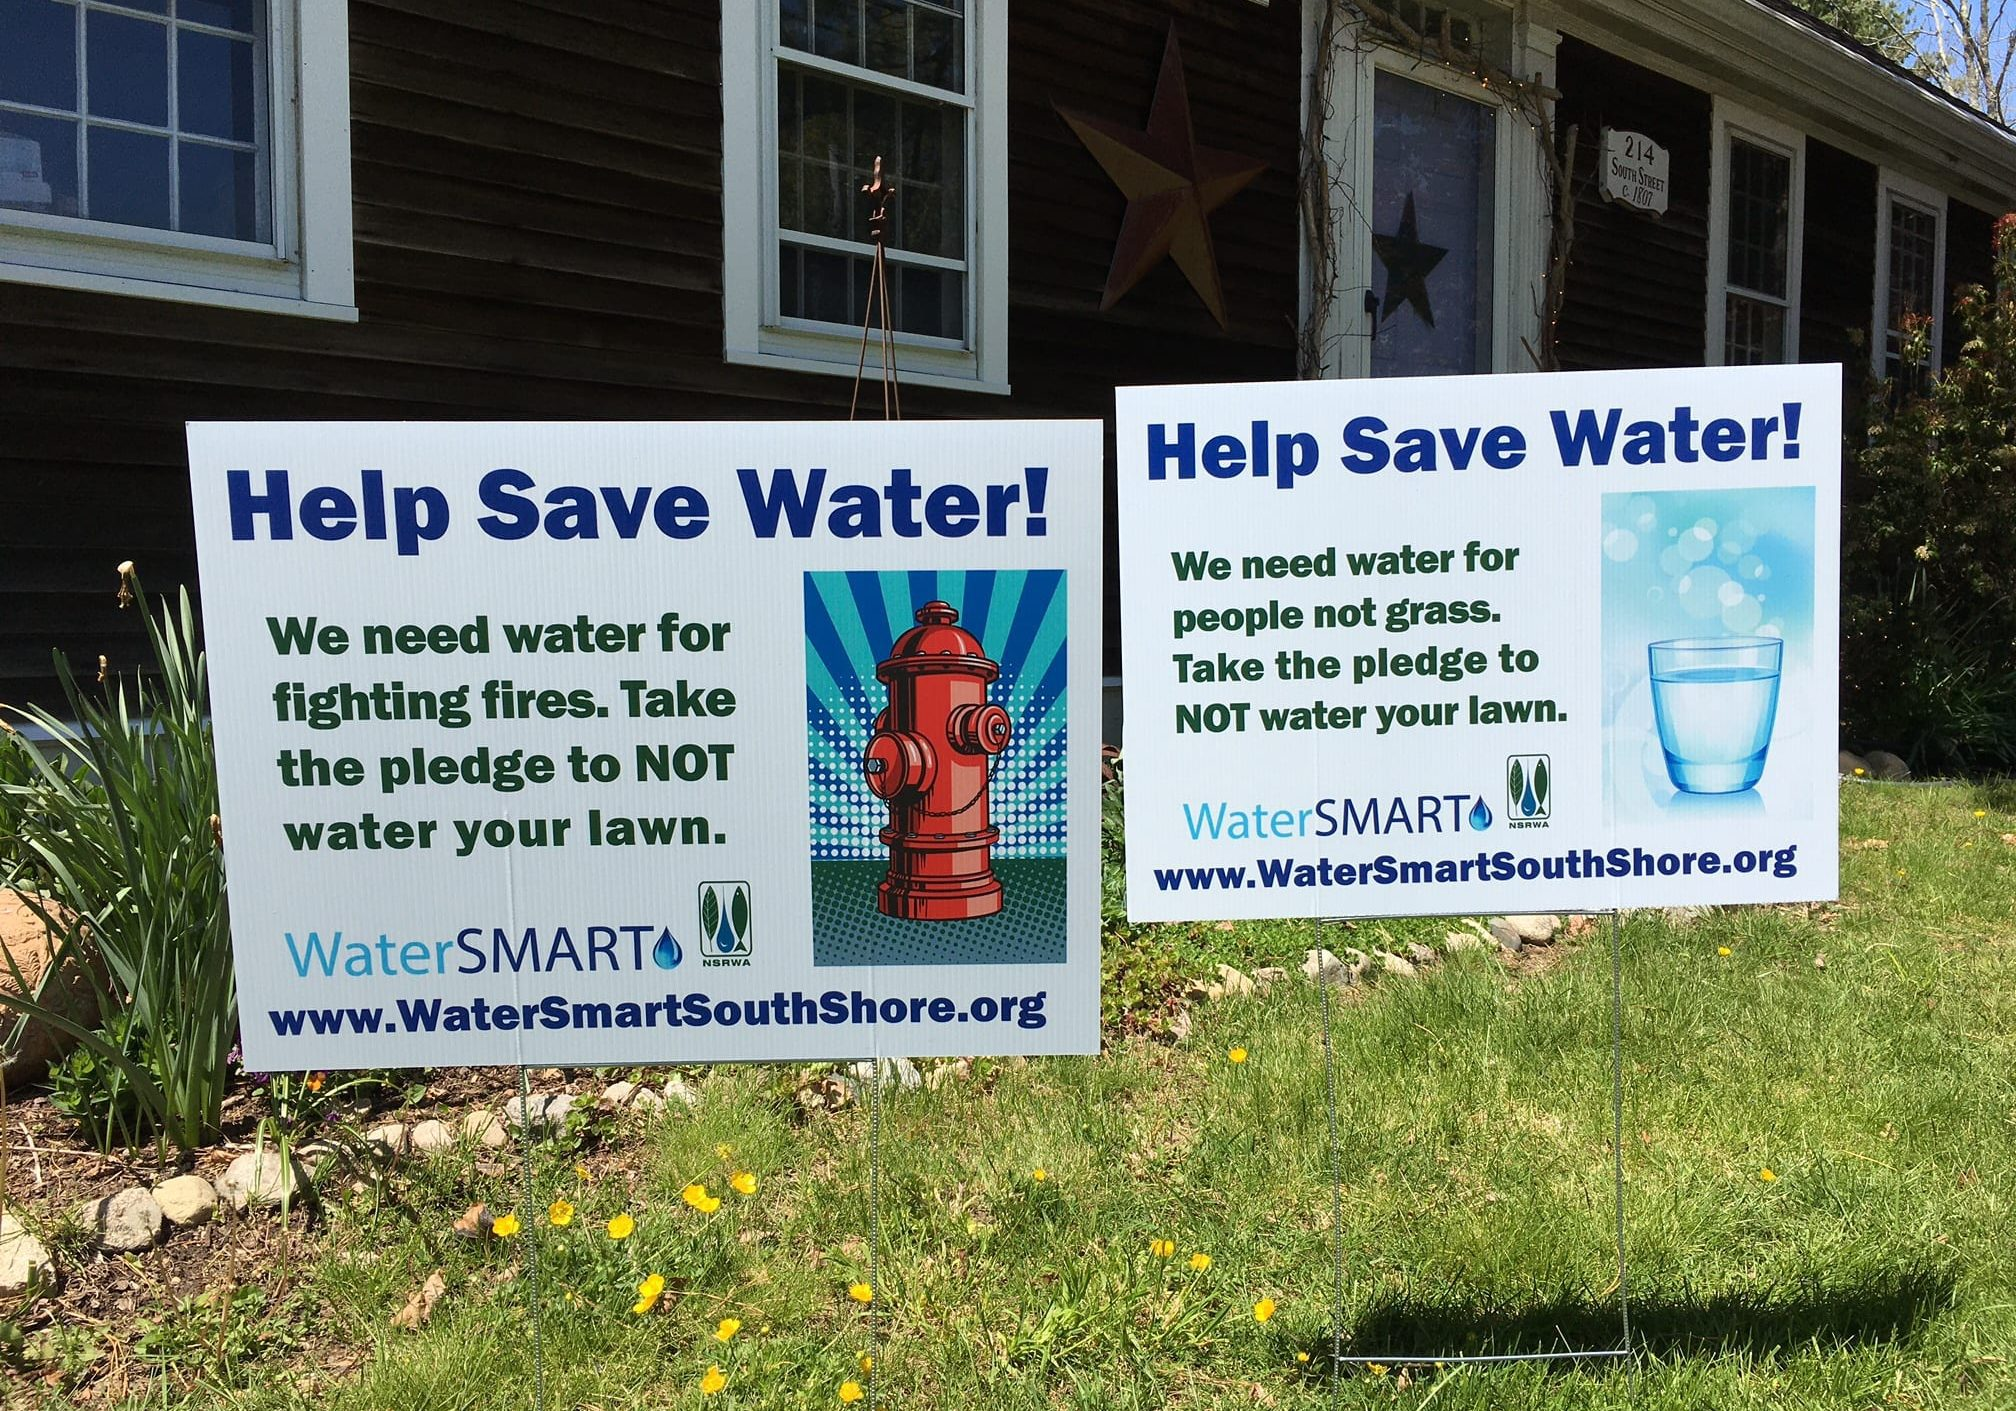 Photo courtesy of Weir River Watershed Association